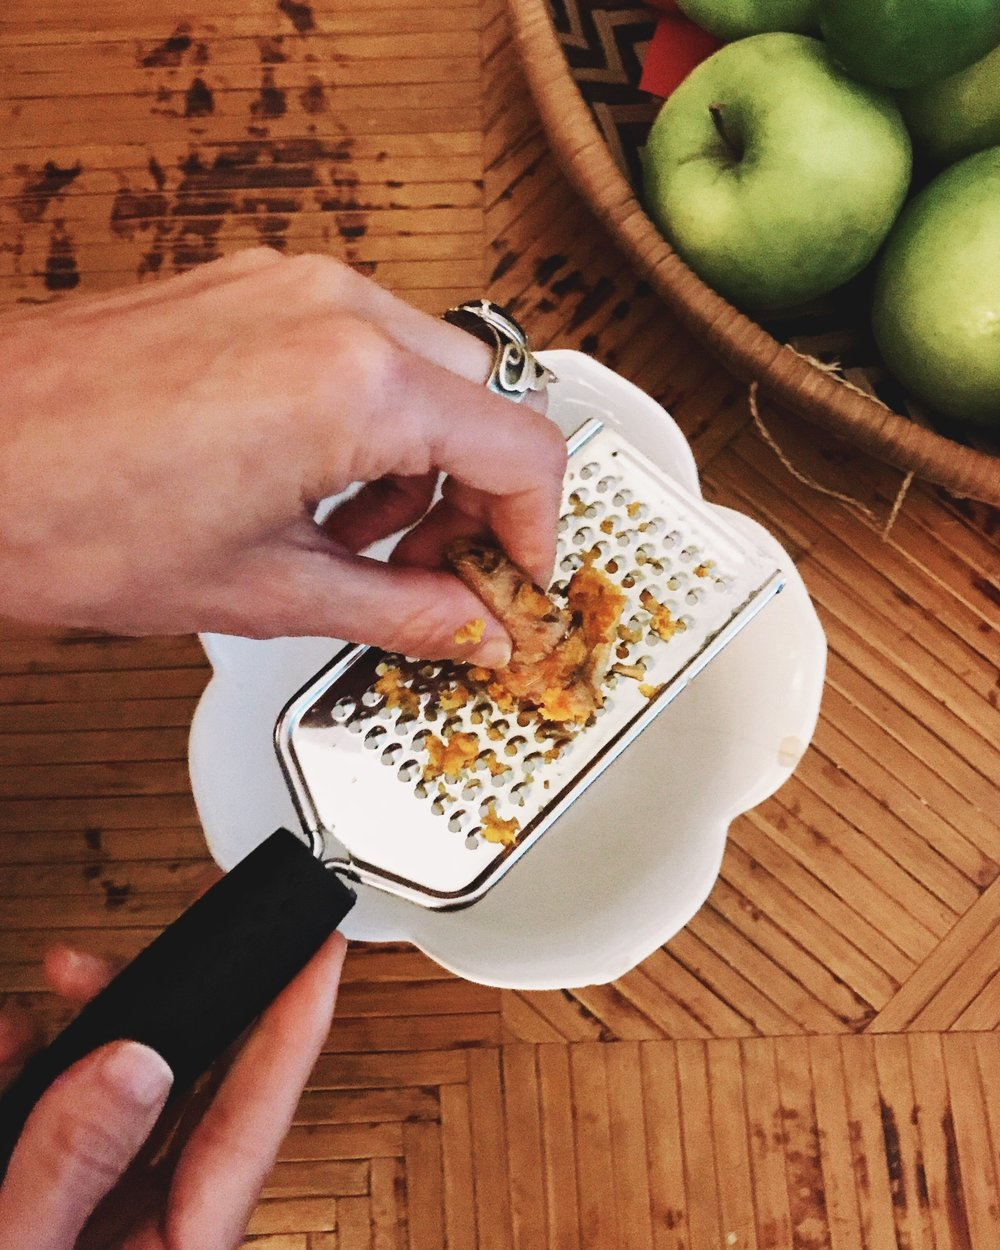 Grating the turmeric, your fingers will turn yellow, but that's how you know it's legit!